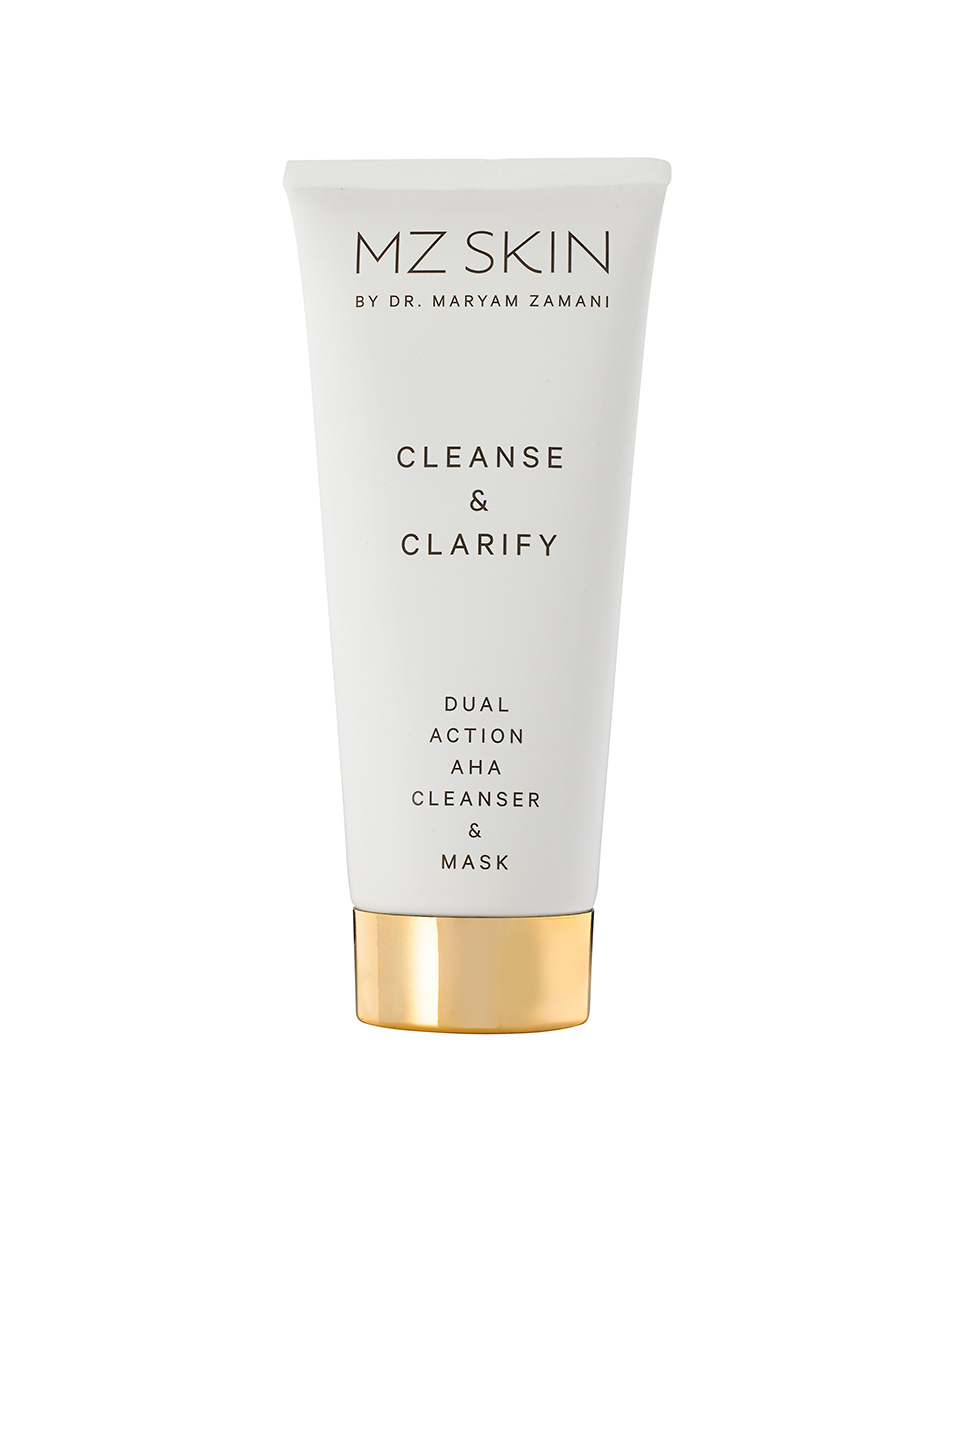 MZ Skin Cleanse & Clarify Dual Action AHA Cleanser & Mask in